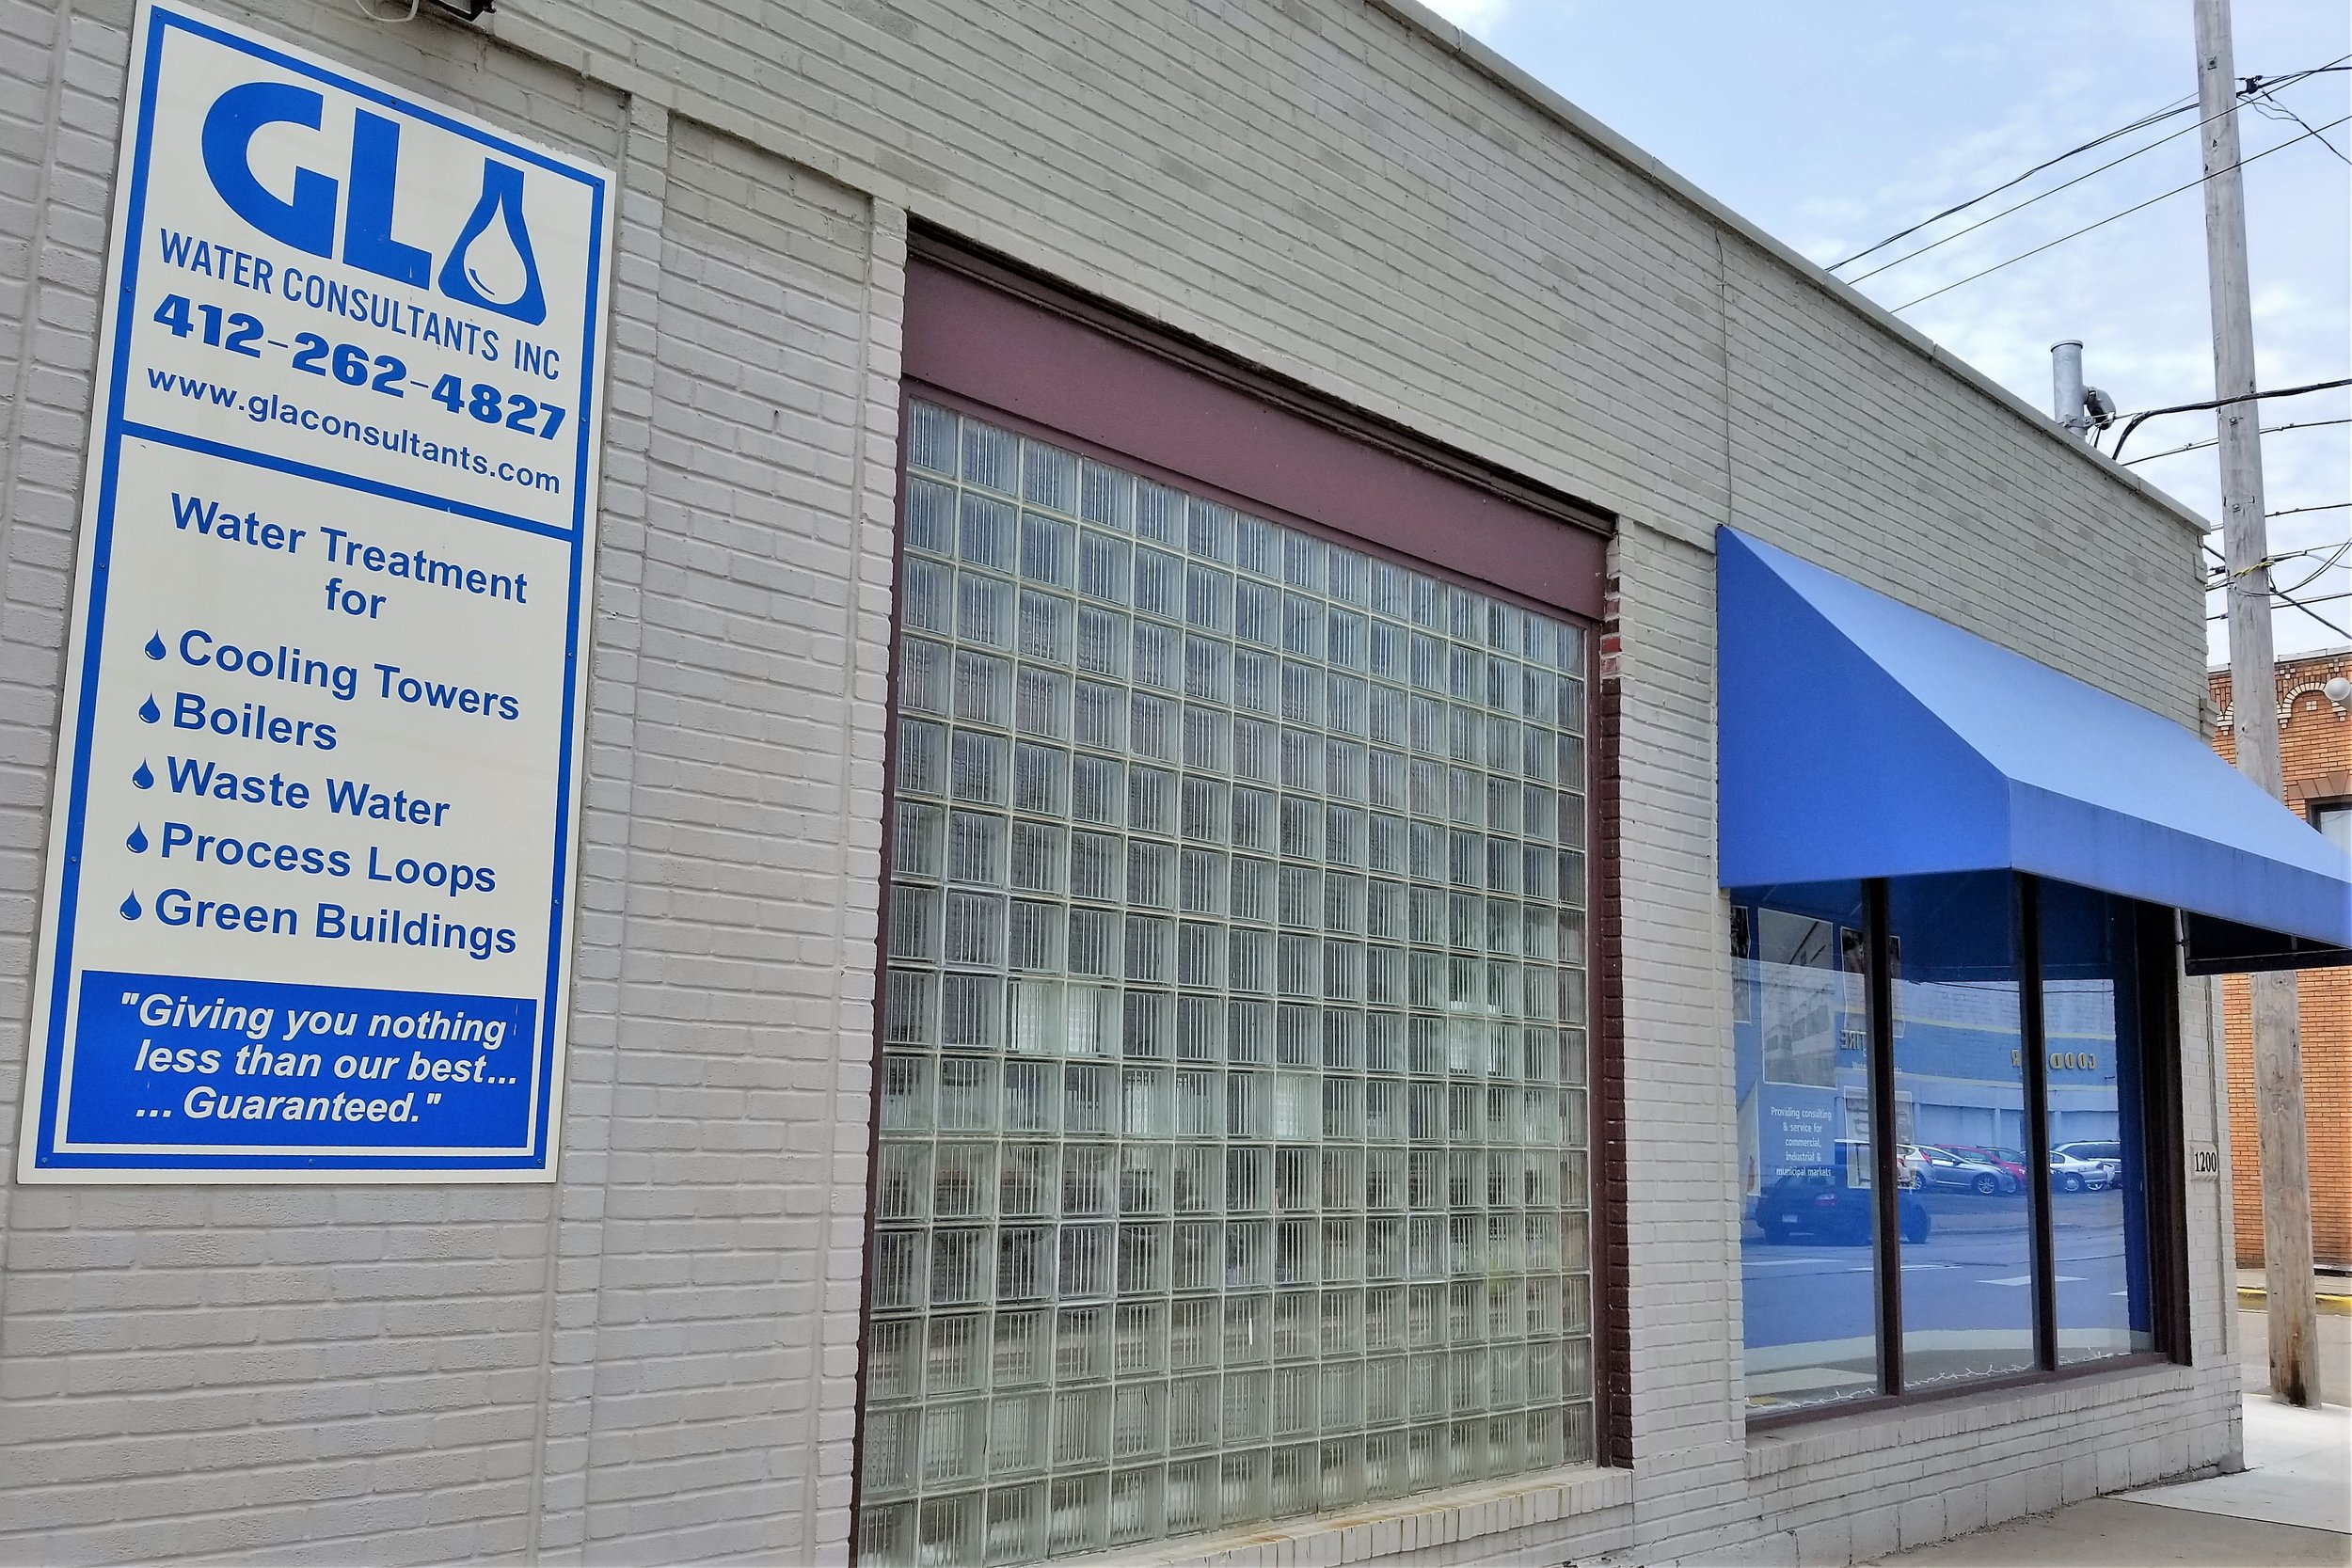 GLA Water Consultants - 1200 4th Ave, (412) 262-4827